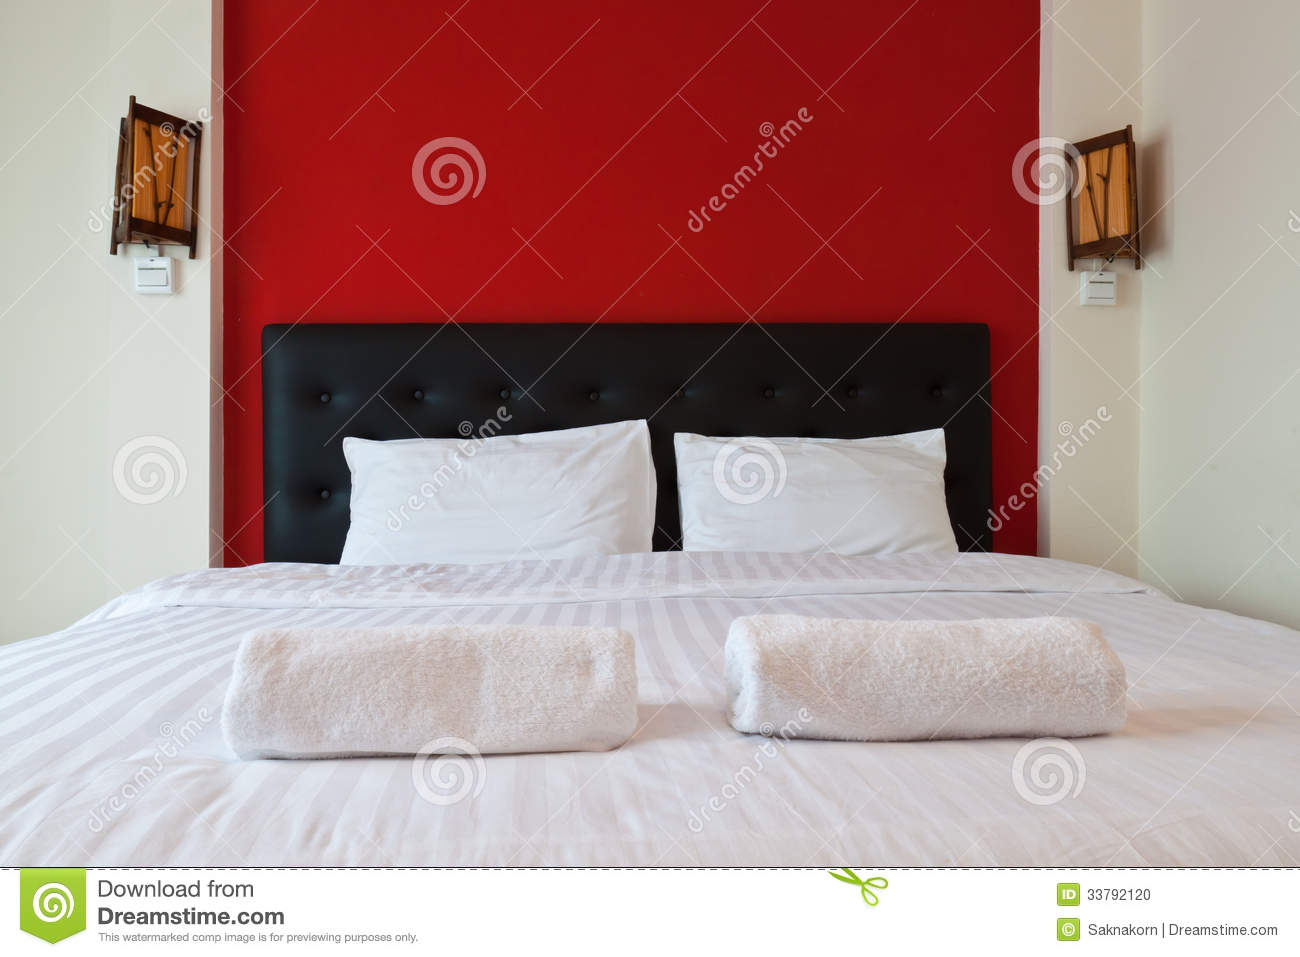 Bedroom With Red Wall Towel On The Bed Stock Photo